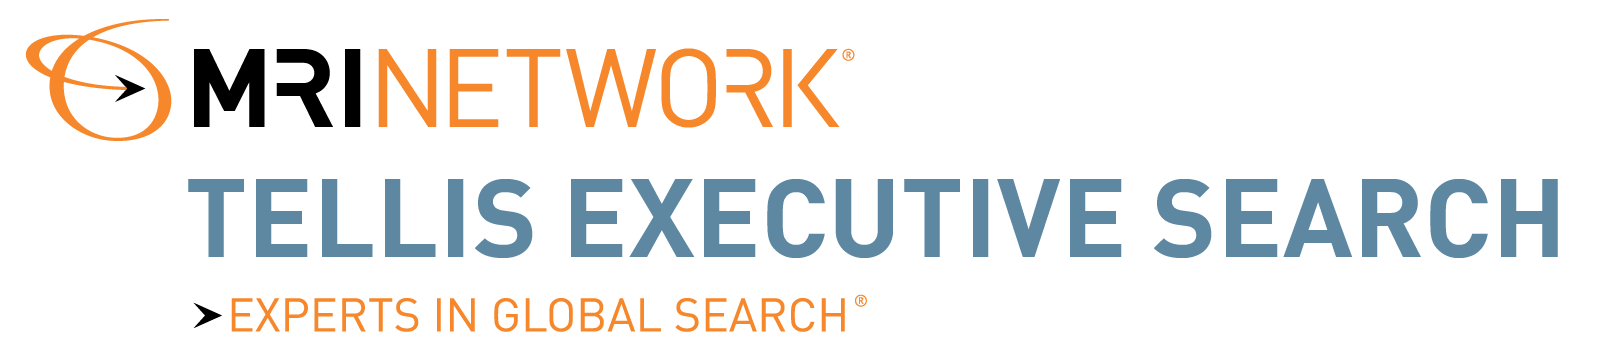 Tellis Executive Search